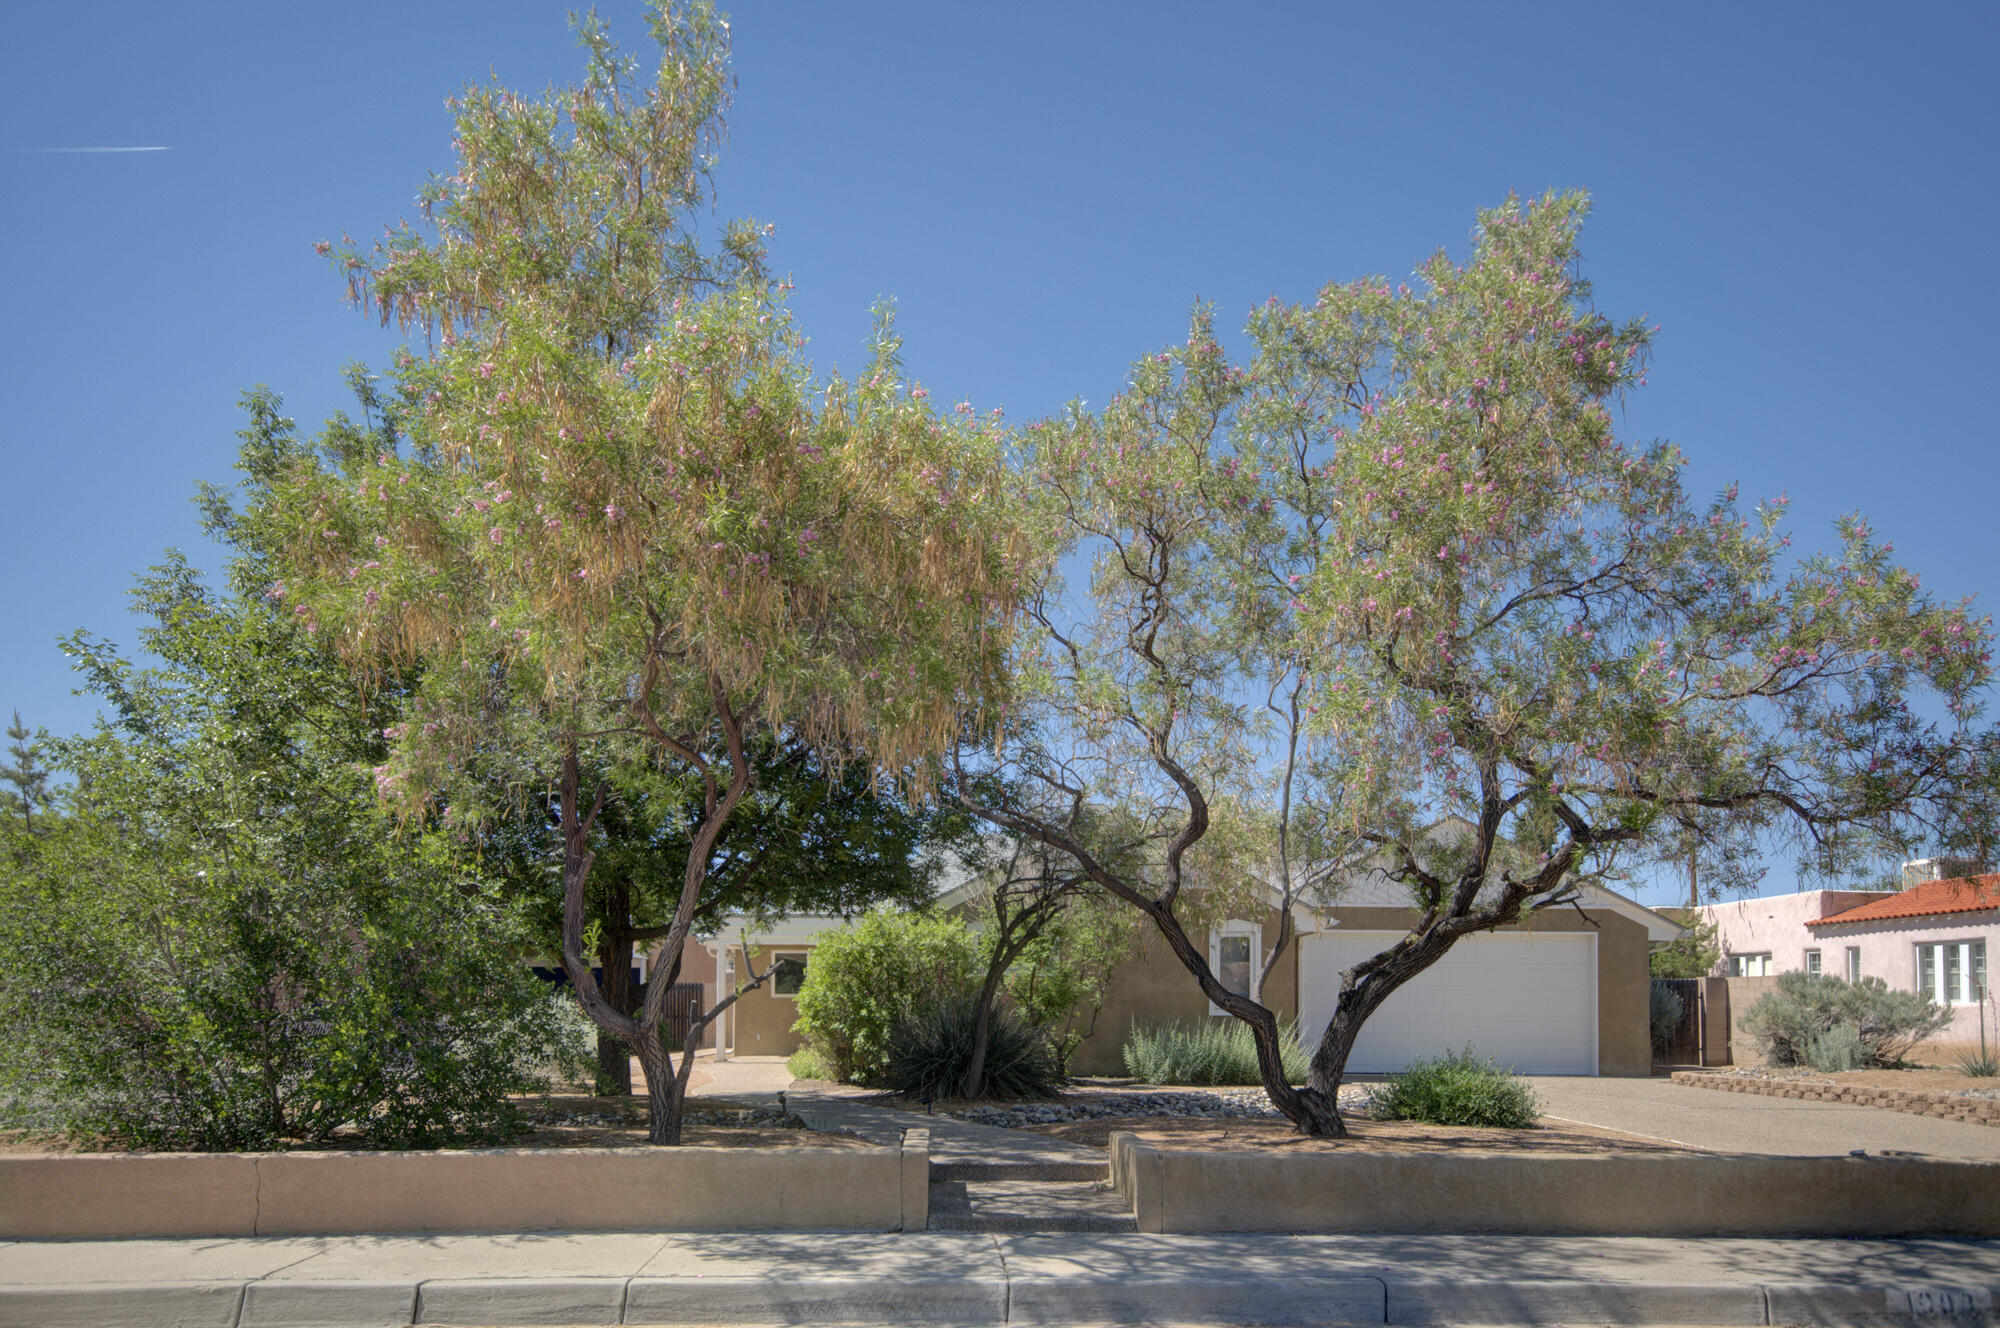 This demands very little of you but gives you so much starting from the picture perfect condition. Young home for Ridgecrest built in 1989 on a quiet street...Quality construction with oversized rooms. Clearstory windows create light & airy feeling heightened by oversized glass windows to bring the outside in. The dining room handles a 10 foot table with even room to grow. Tile and hardwood floors throughout the home. Counterspace that just keeps going and tons of cabinets with pull outs .This custom home has supersized closets & storage that you dream about. Anderson wood windows combining energy efficiency & style with air lock doors & passive solar. Out building could be a studio or office it's approx 323  not included in square feet. Att: you must see this 2 car garage...wow